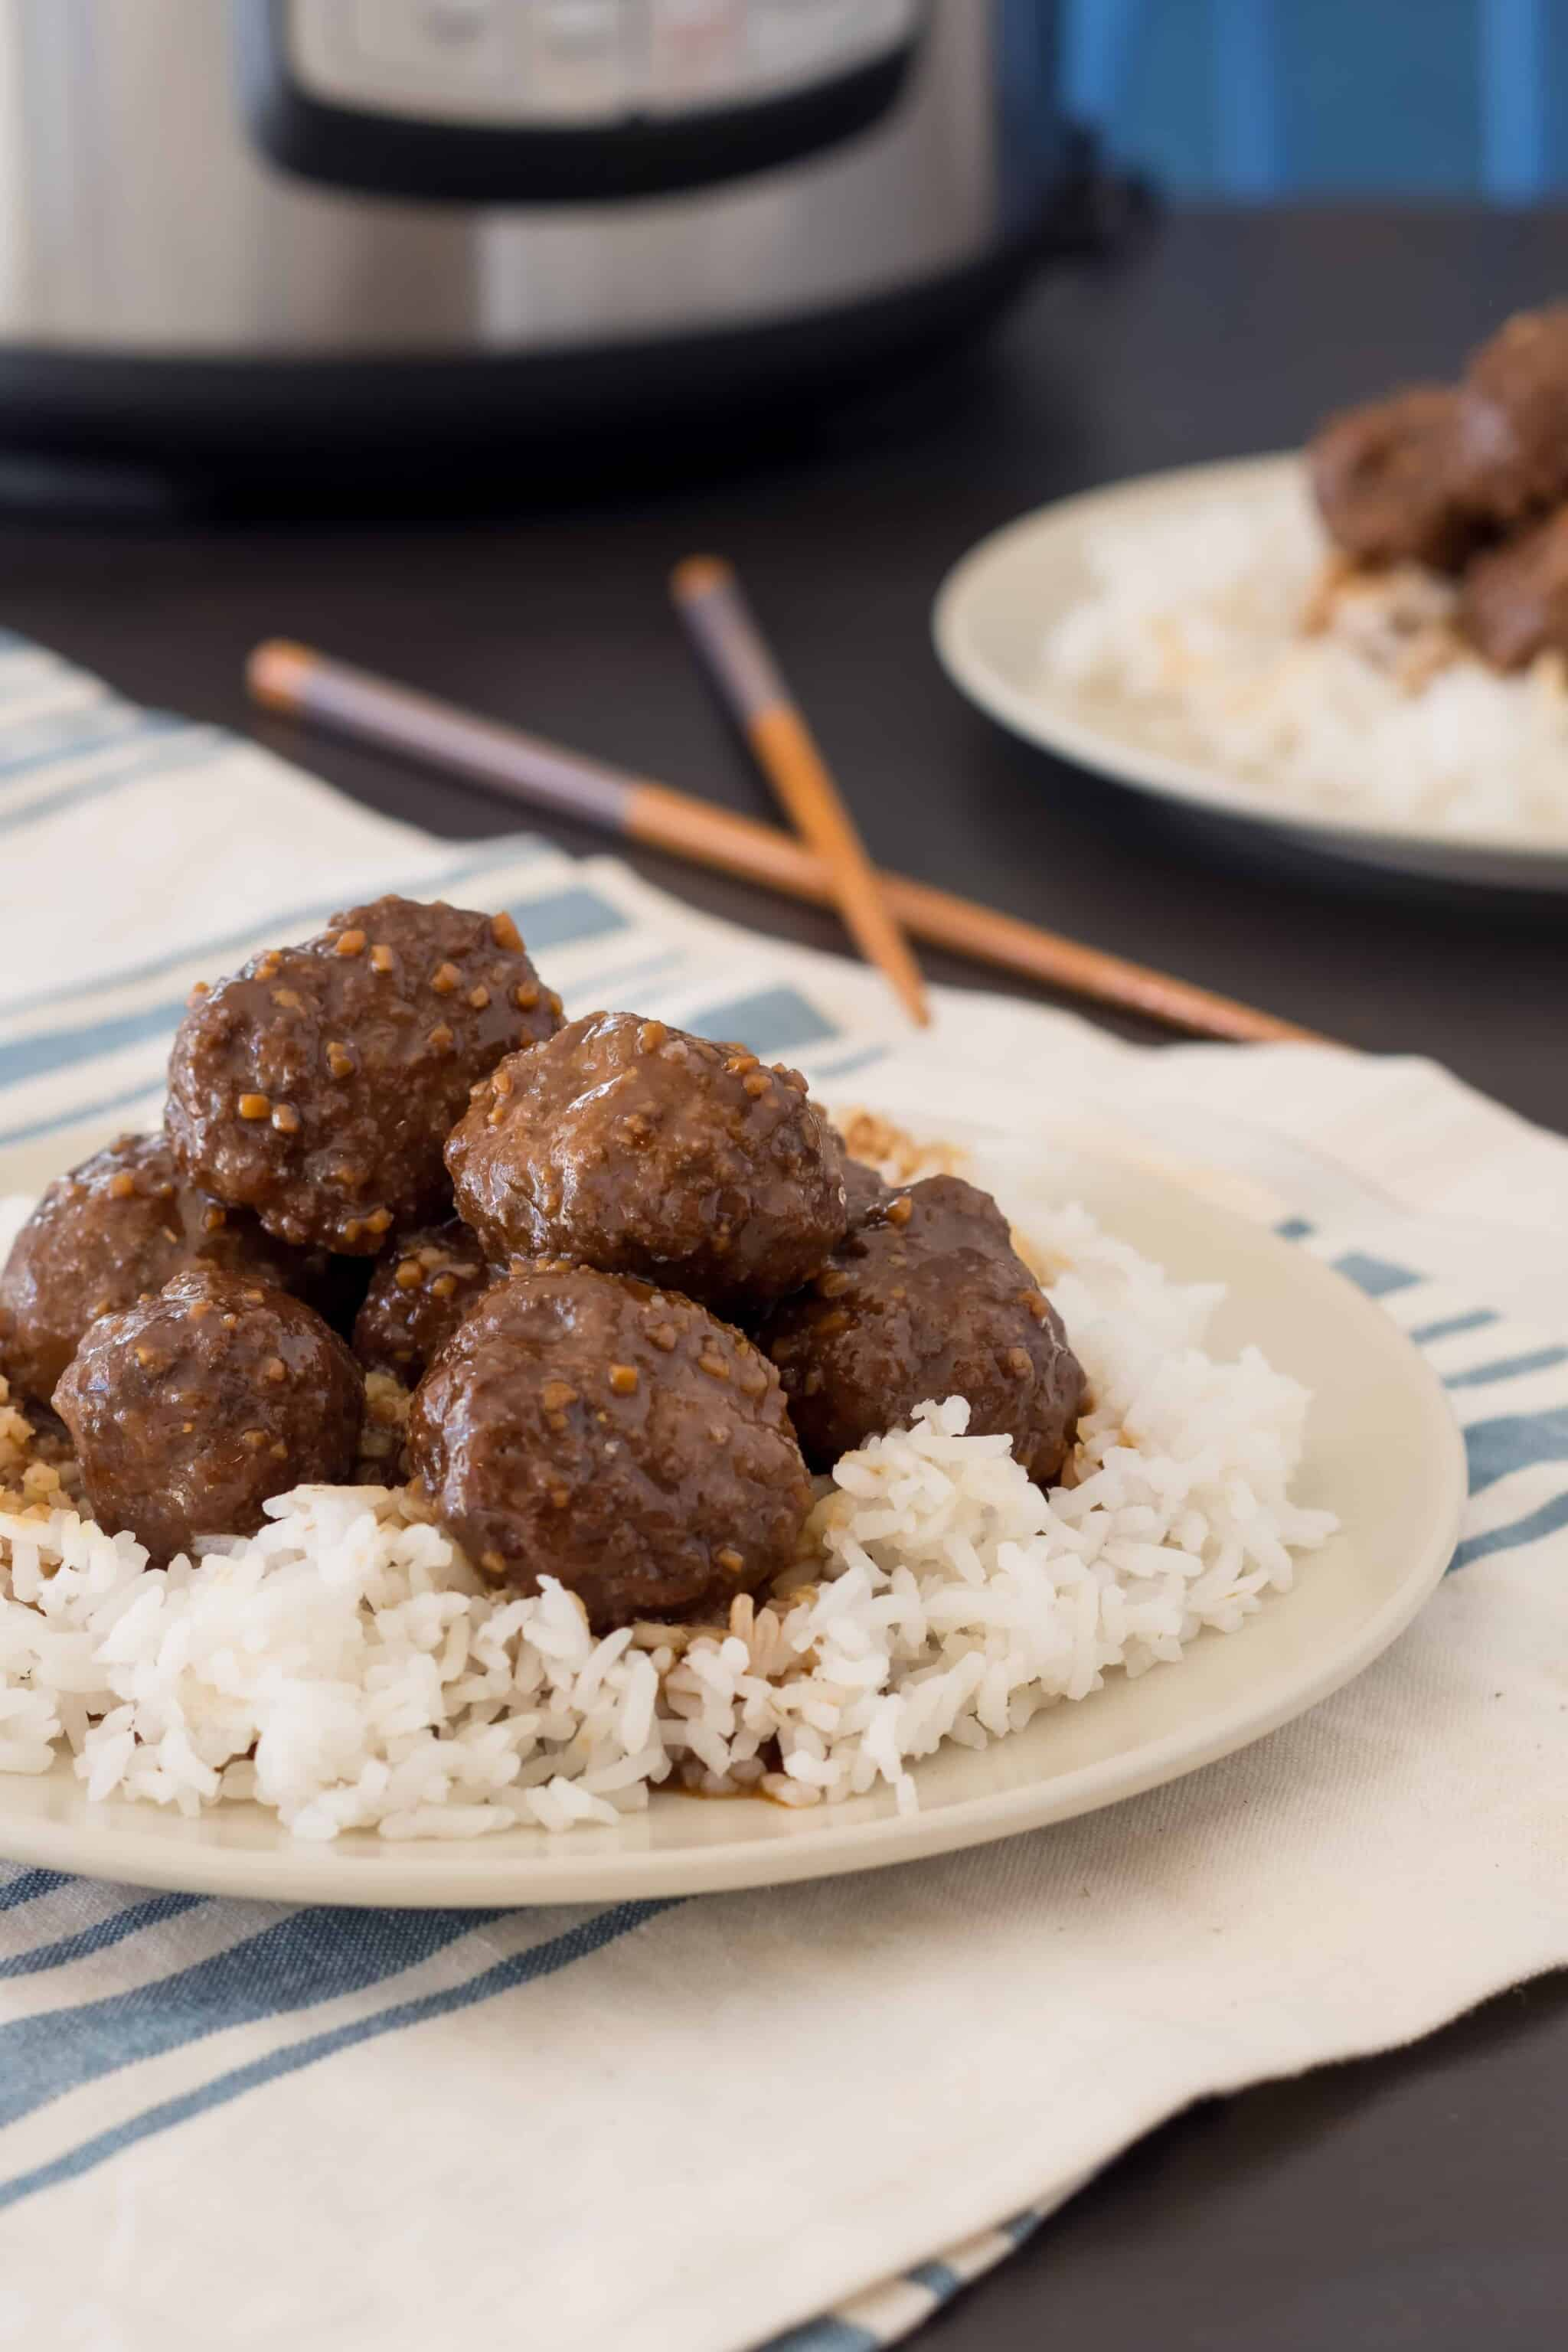 gluten free teriyaki meatballs on a bed of rice on a tan plate with an Instant pot and chopsticks in the background